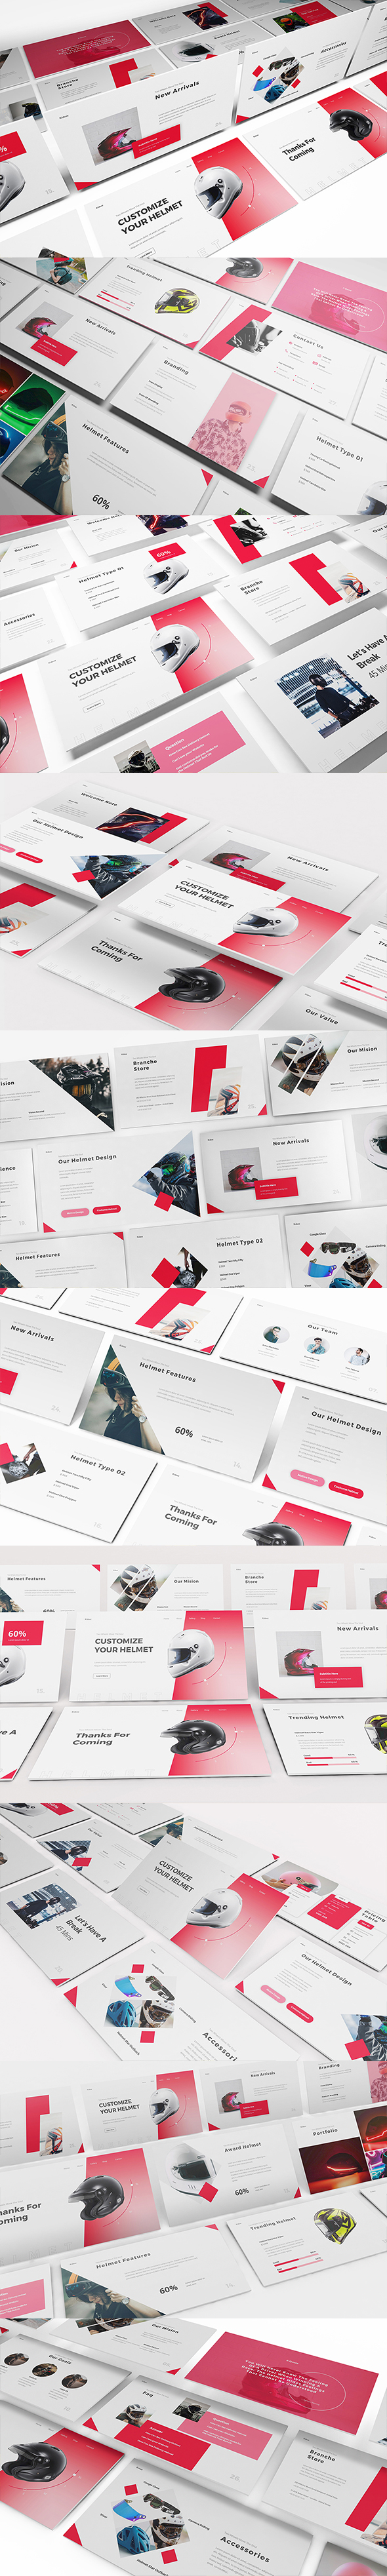 Helmet Shop Google Slides Template